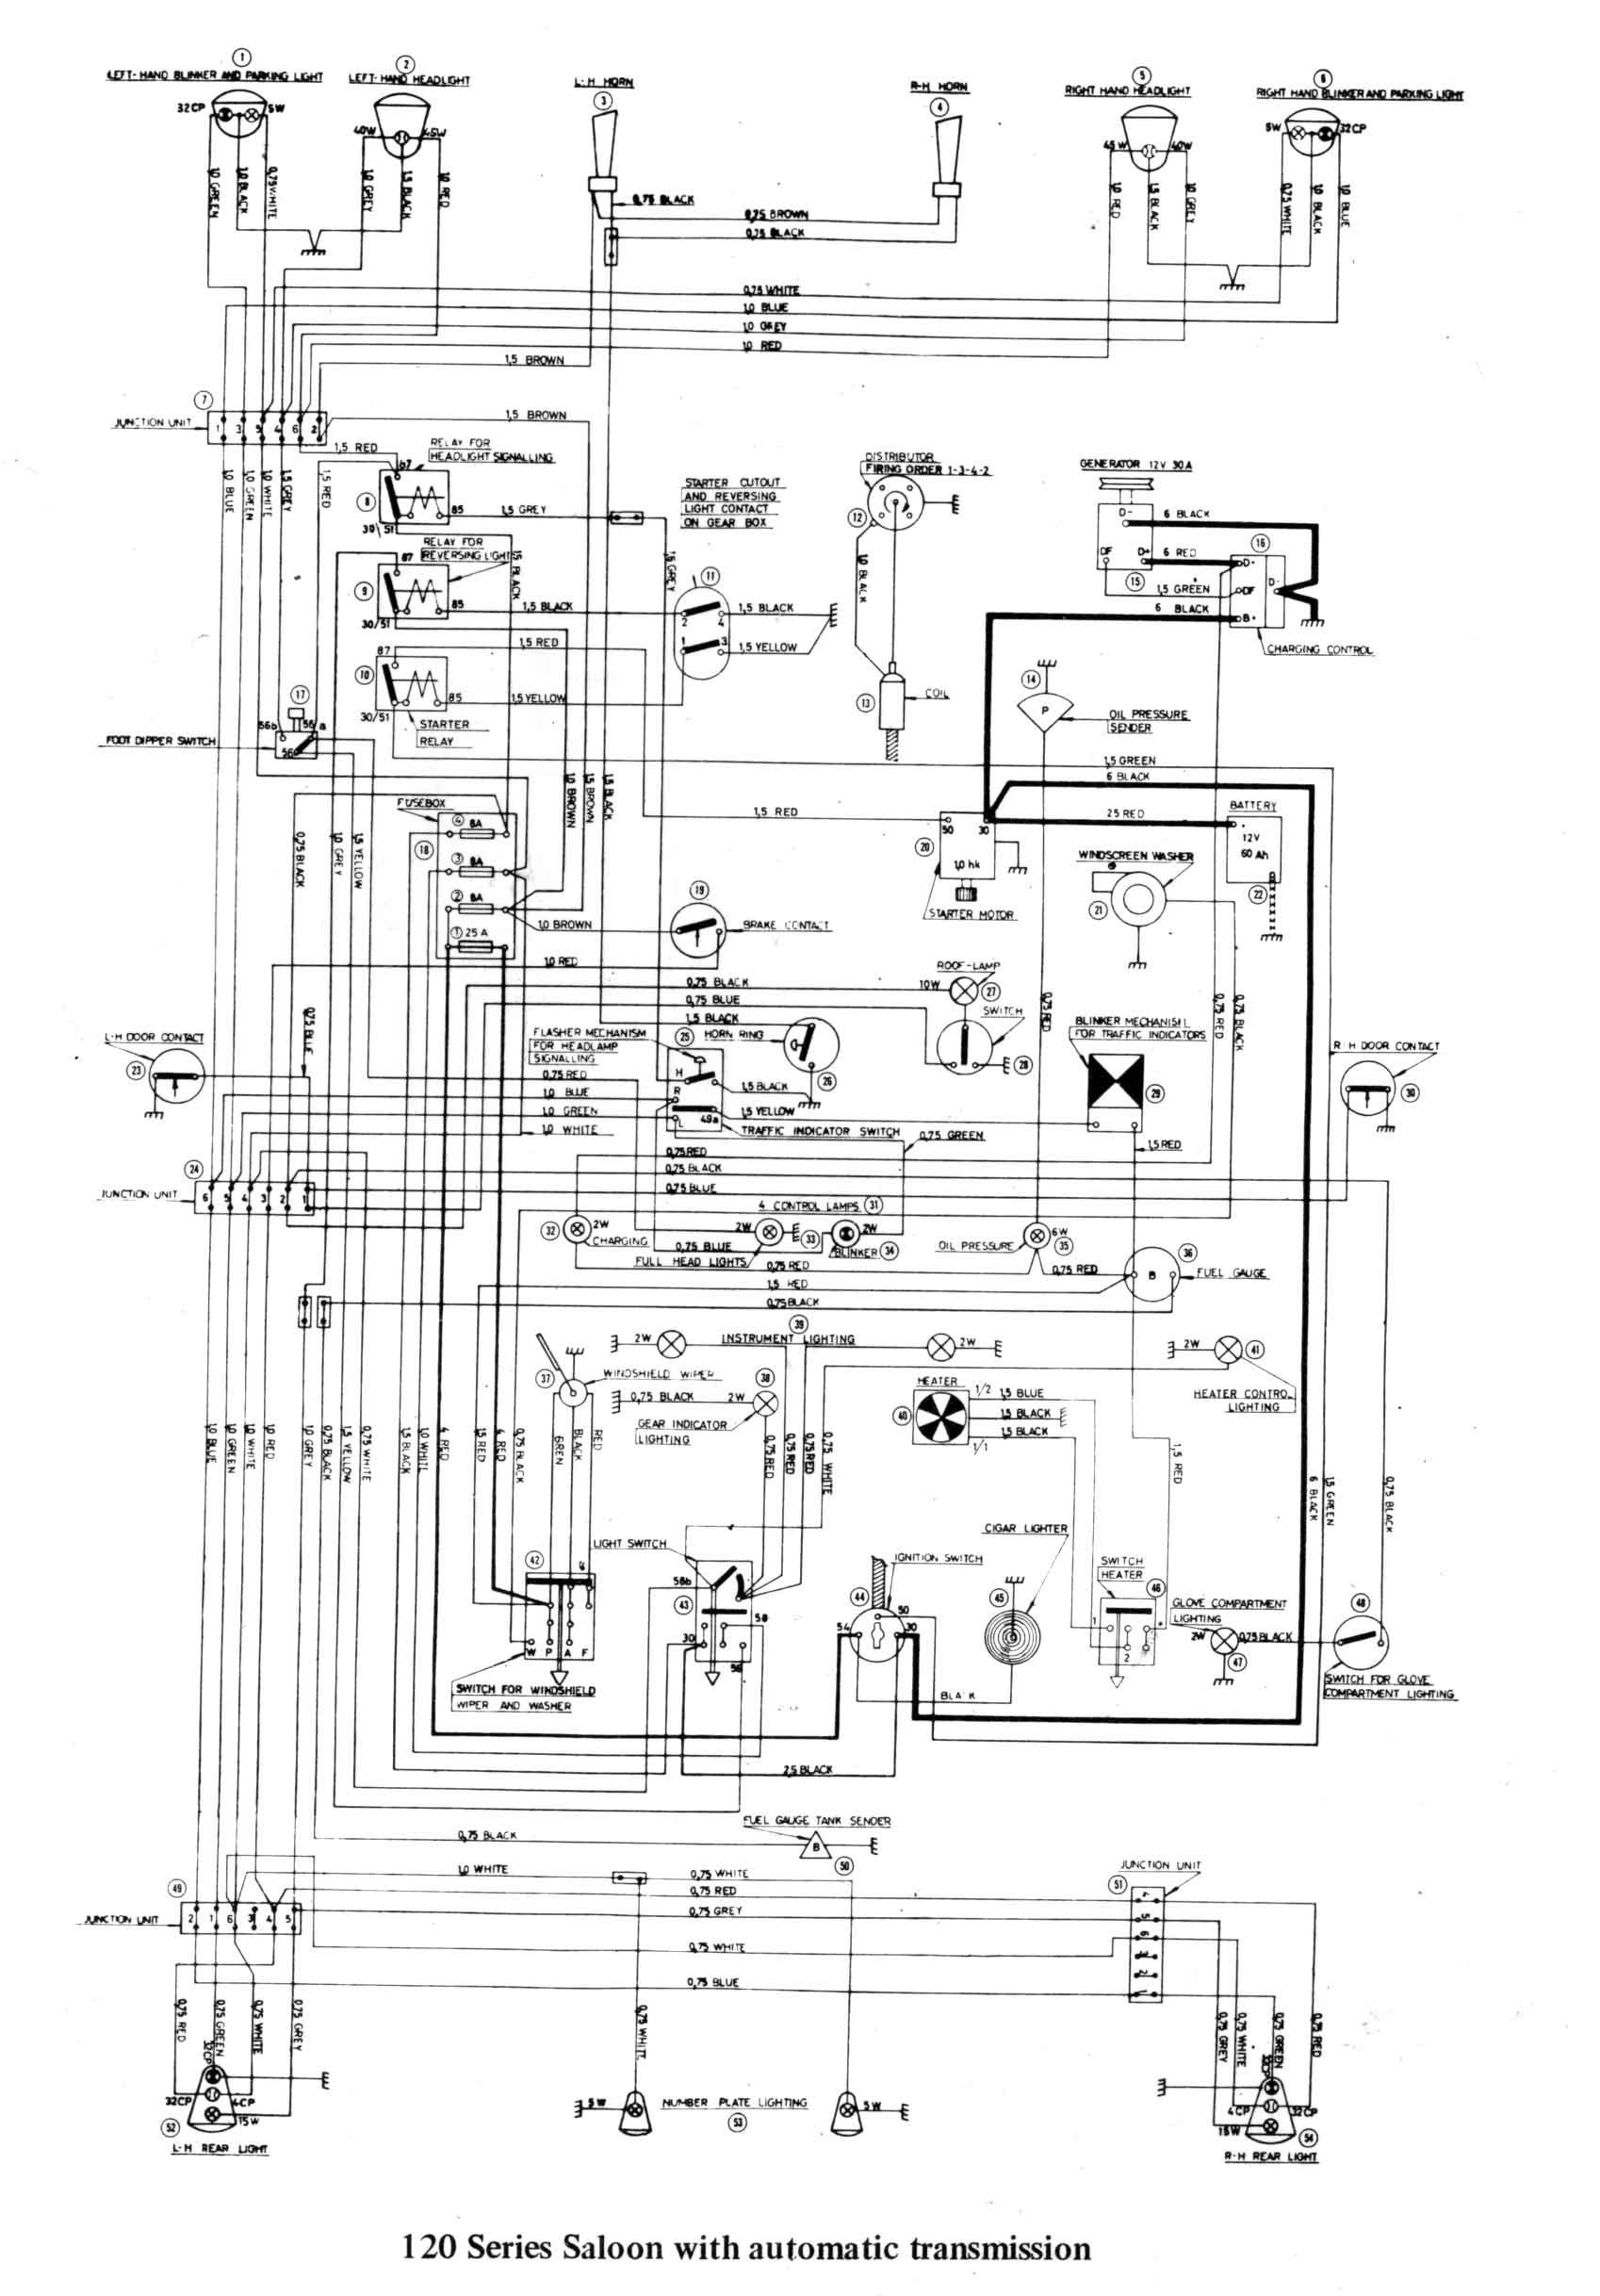 2008 ford Escape Engine Diagram Engine Starter Diagram Sw Em Od Retrofitting A Vintage Volvo – My Of 2008 ford Escape Engine Diagram